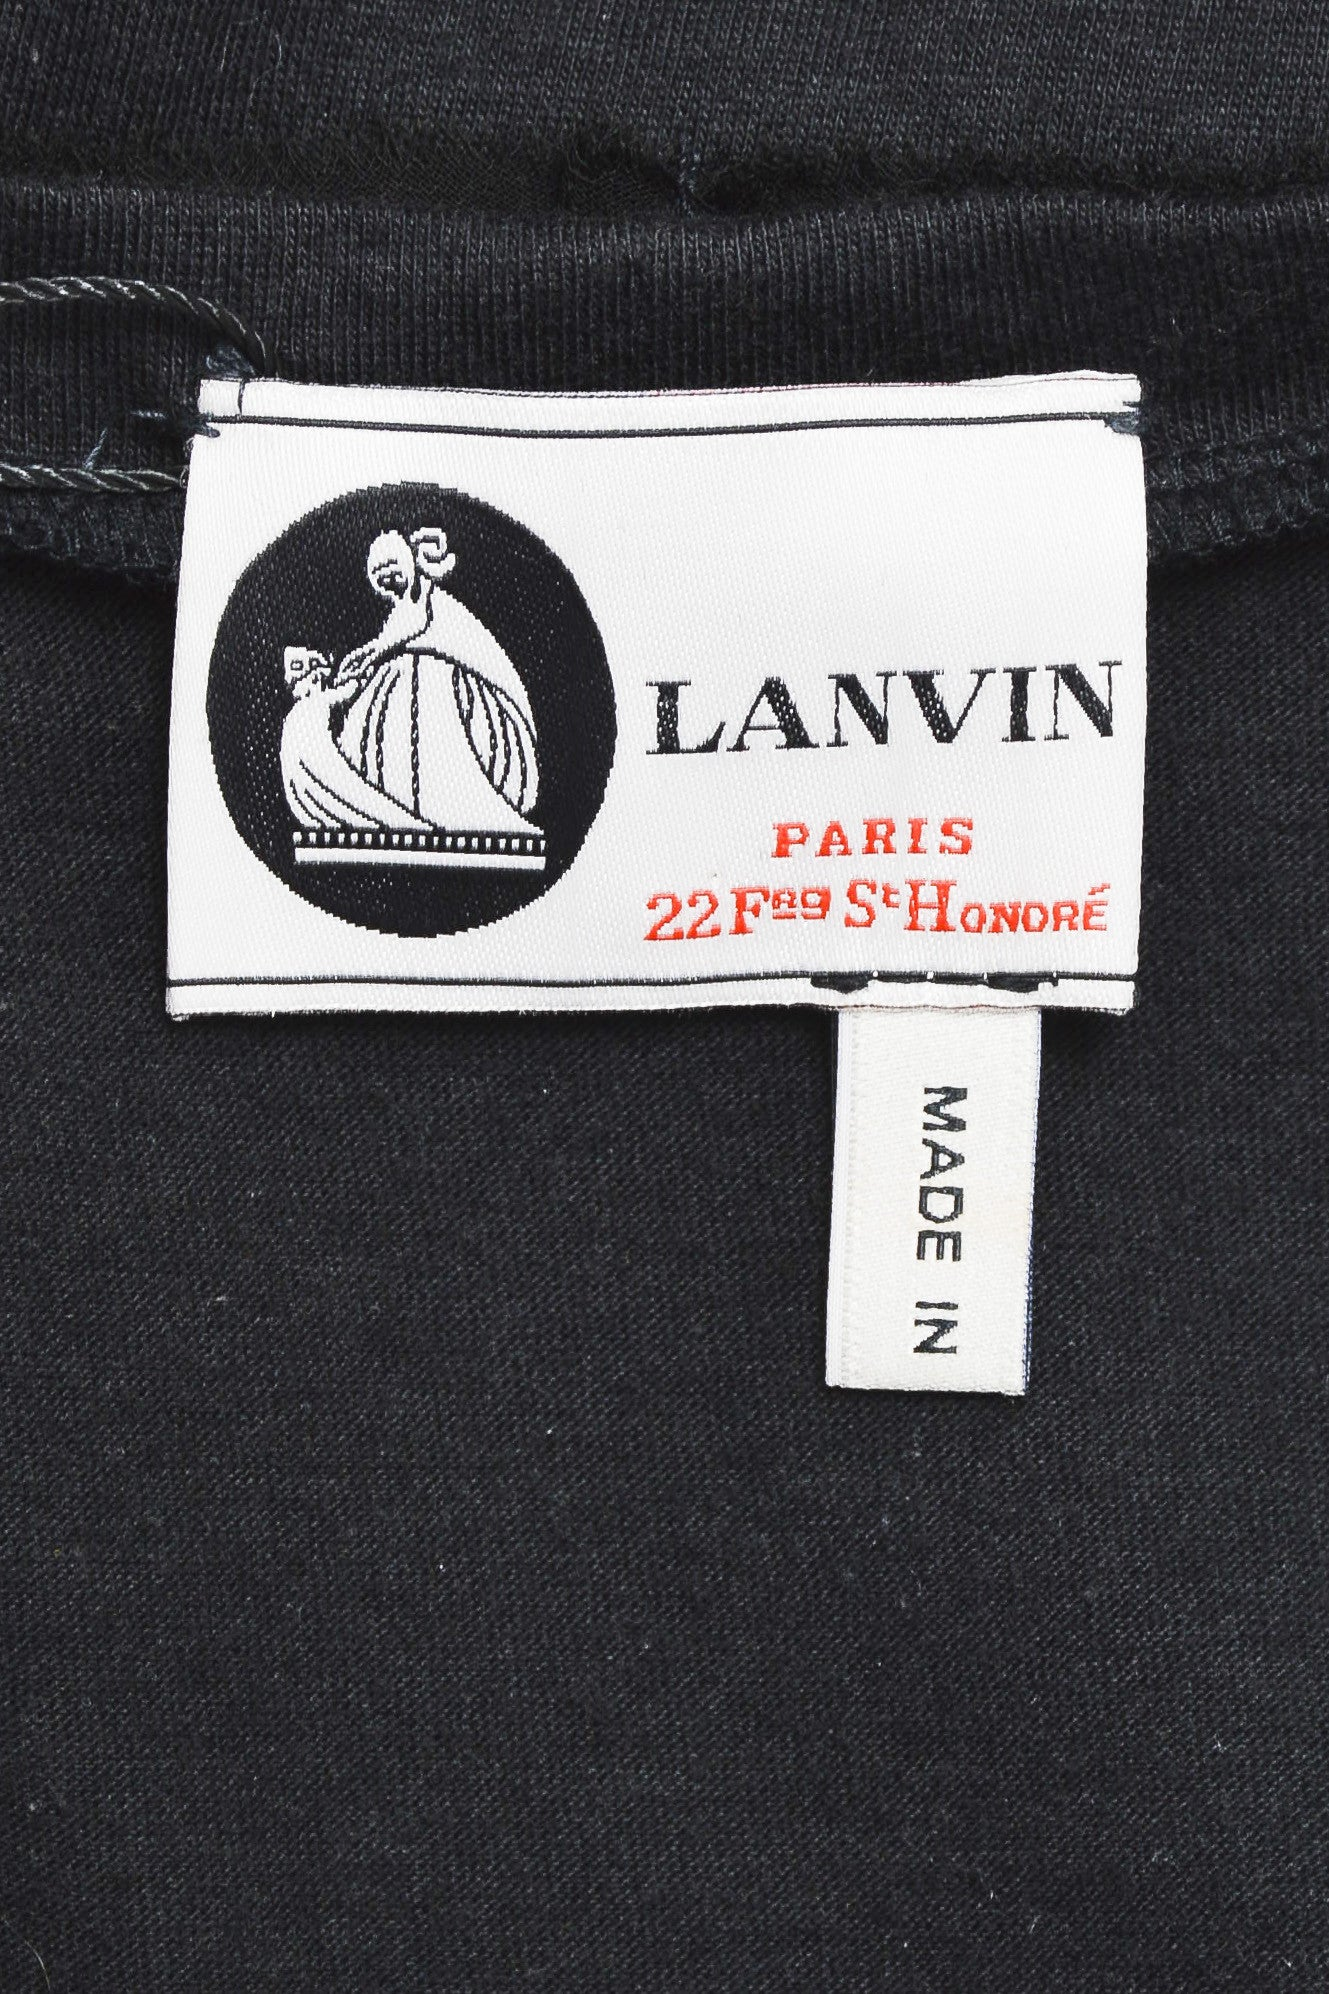 Lanvin Black Cotton Knit Chiffon Crystal Embellished Belted Sleeveless Dress Brand